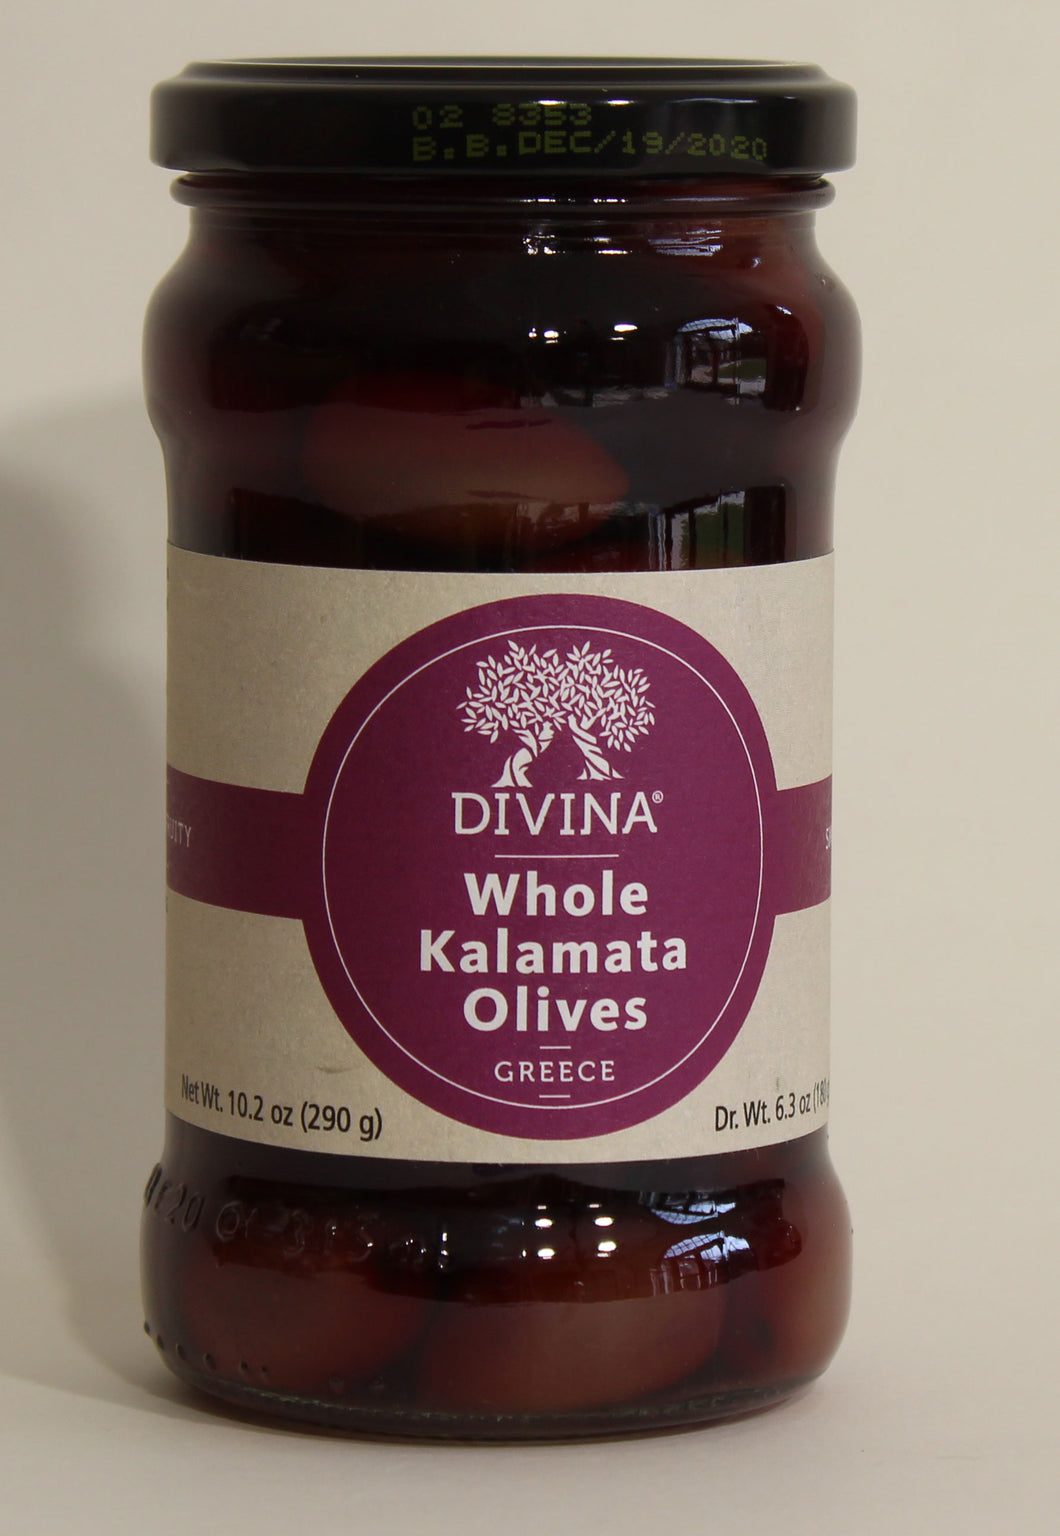 Kalamata whole Olives Divina